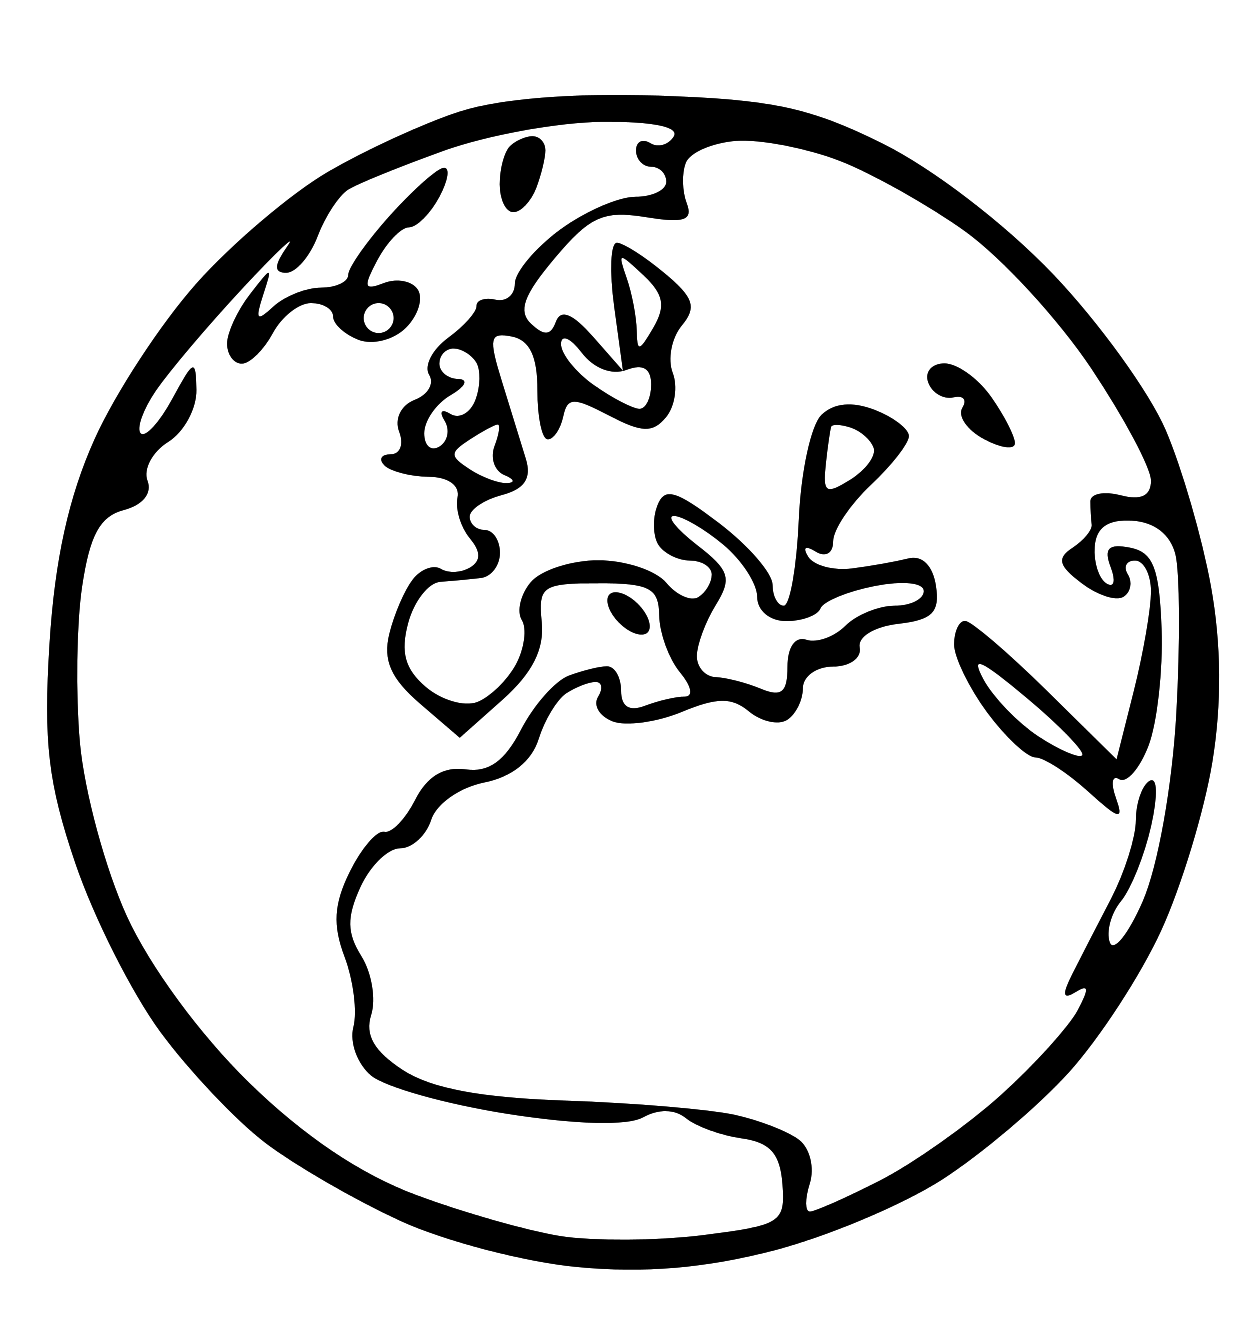 Earth Clip Art Black And White